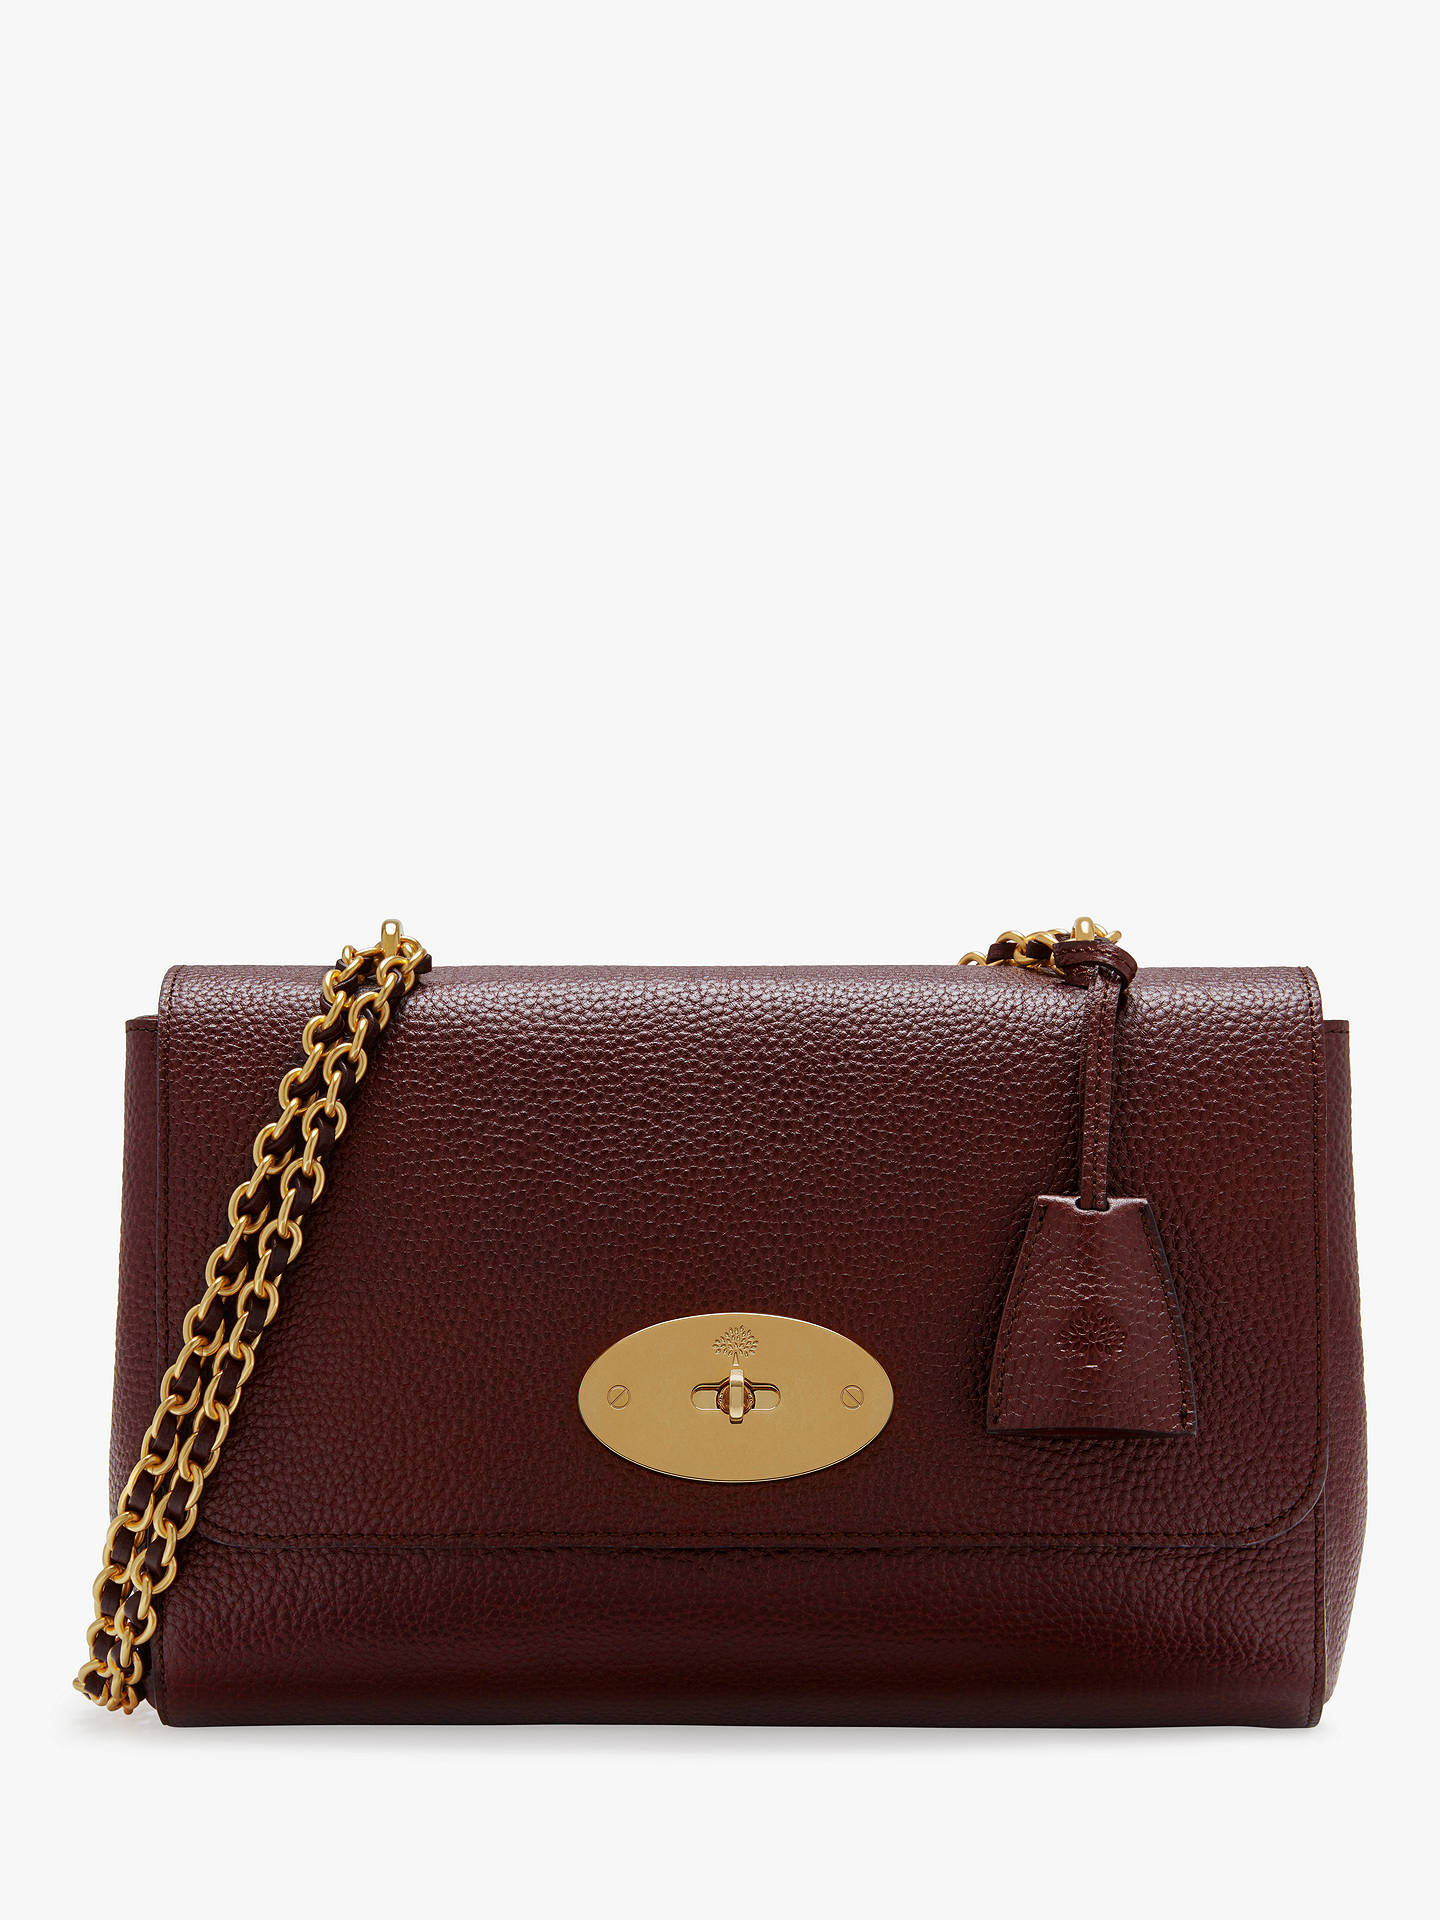 98d86cf7af6 BuyMulberry Medium Lily Grain Veg Tanned Leather Shoulder Bag, Oxblood  Online at johnlewis.com ...